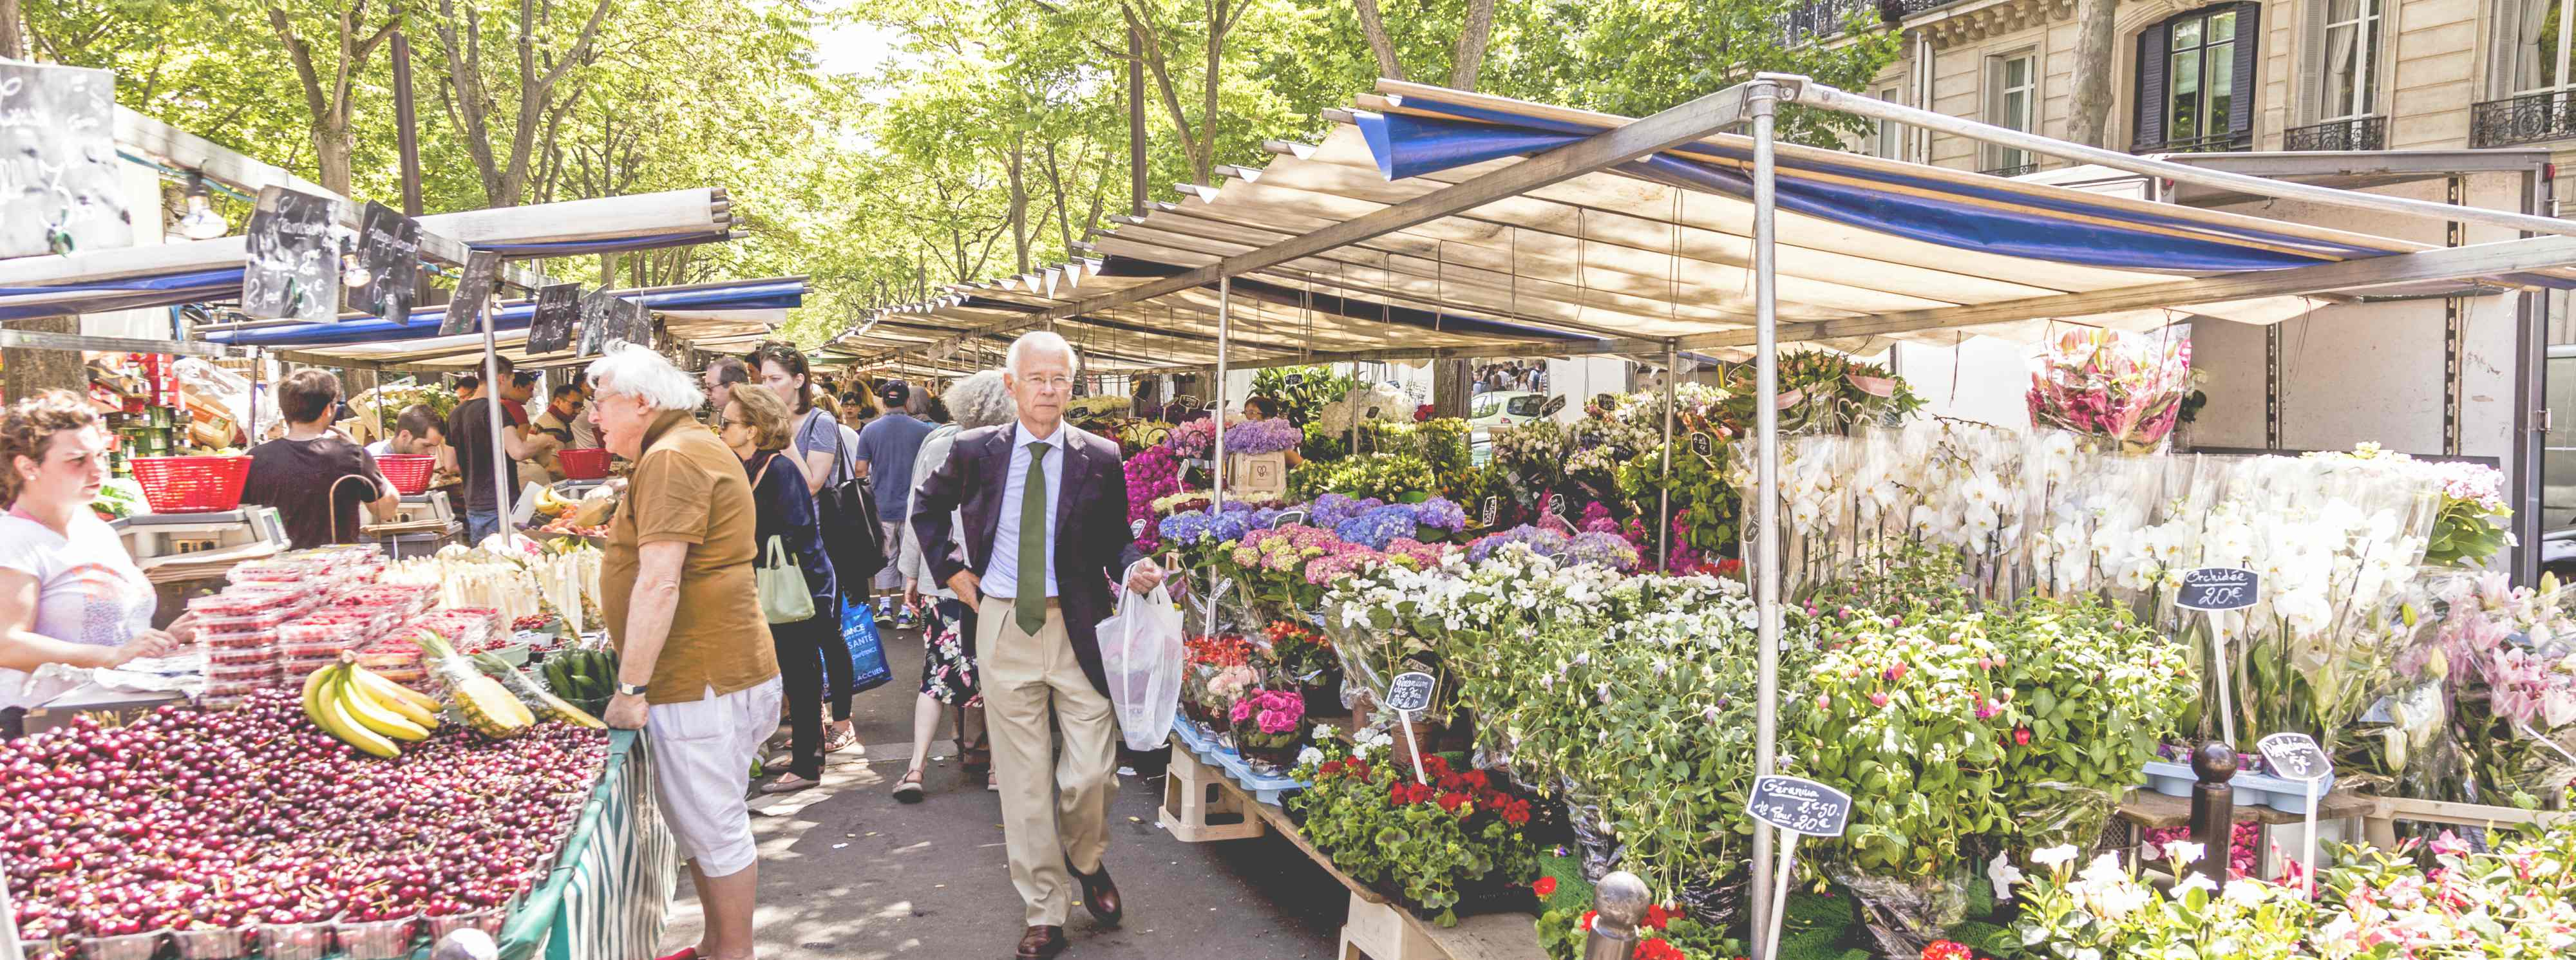 market-flowers-man-edit